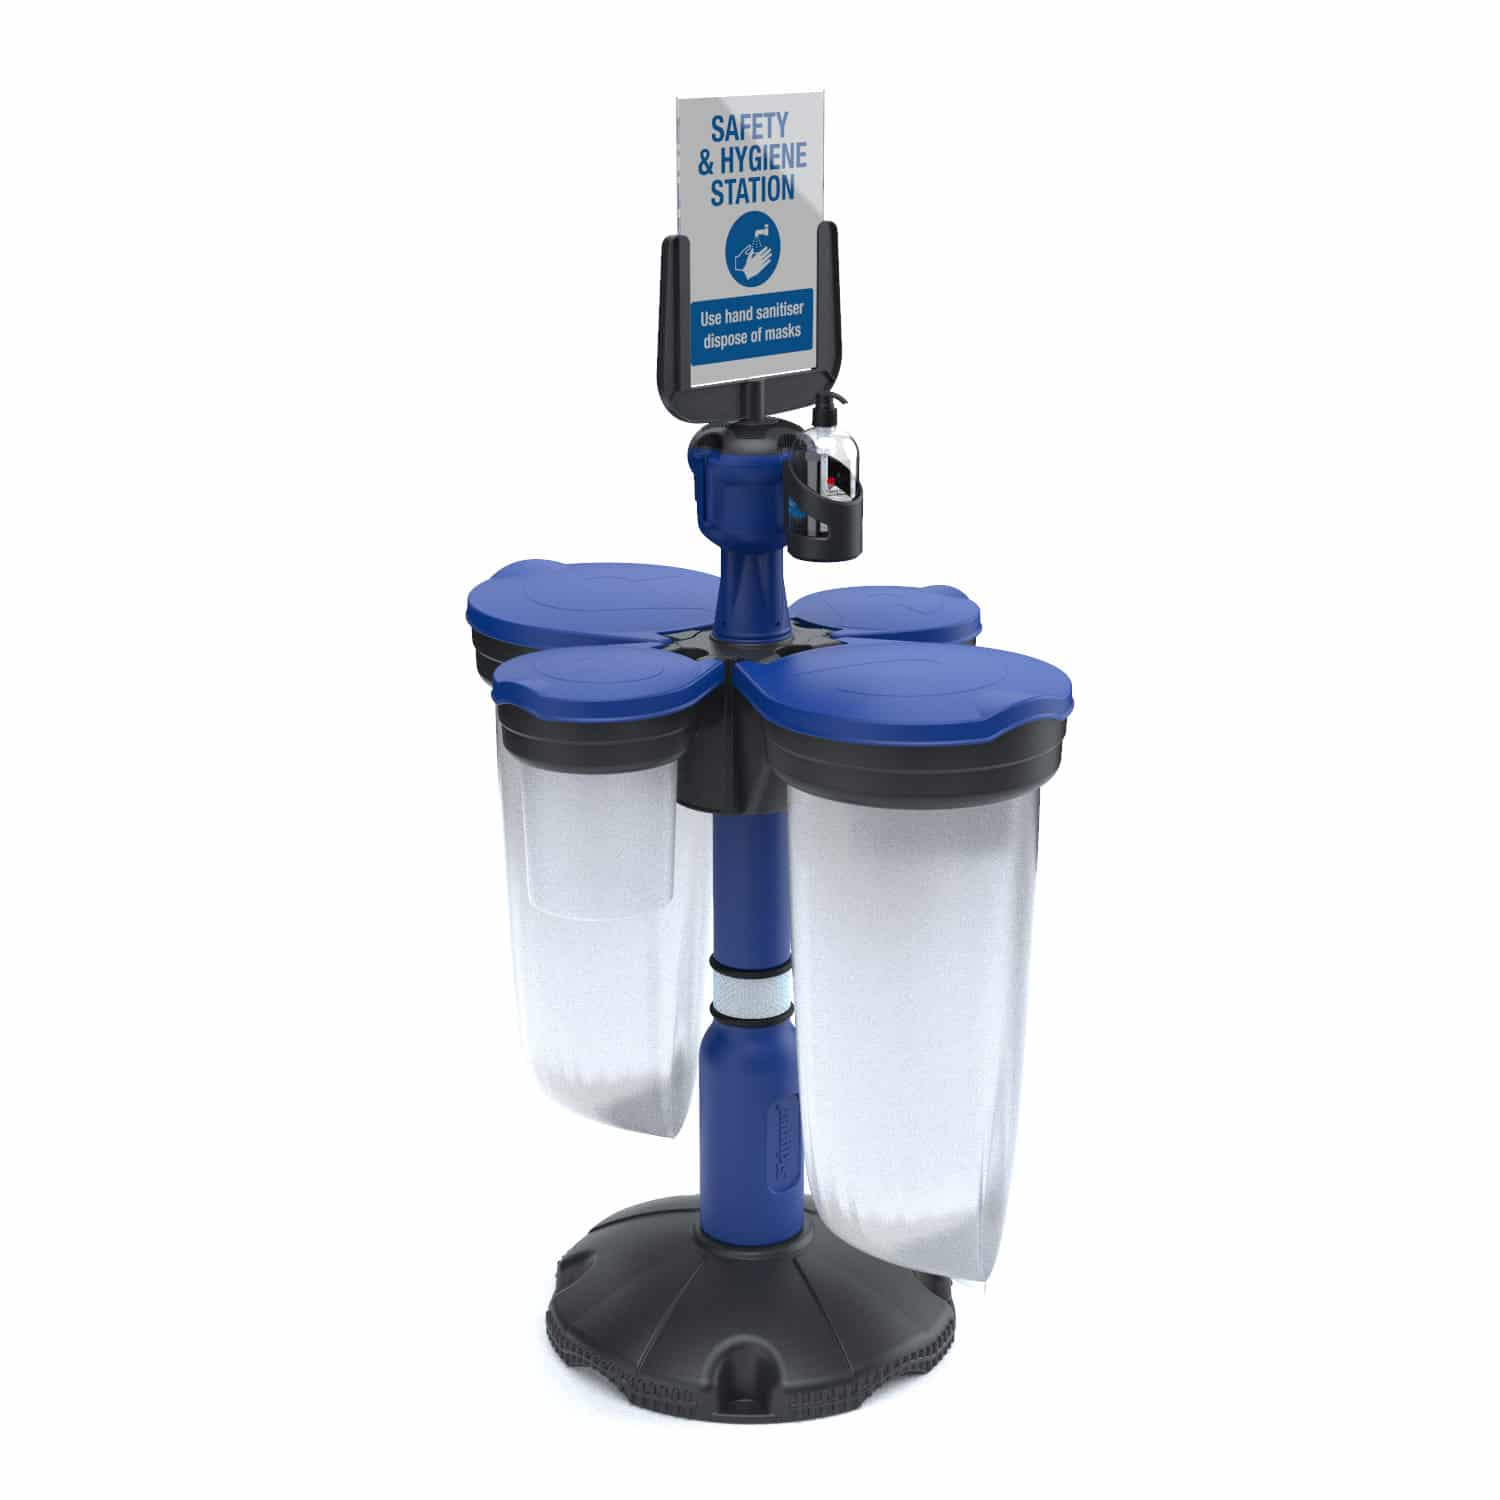 safety-station-2-blue